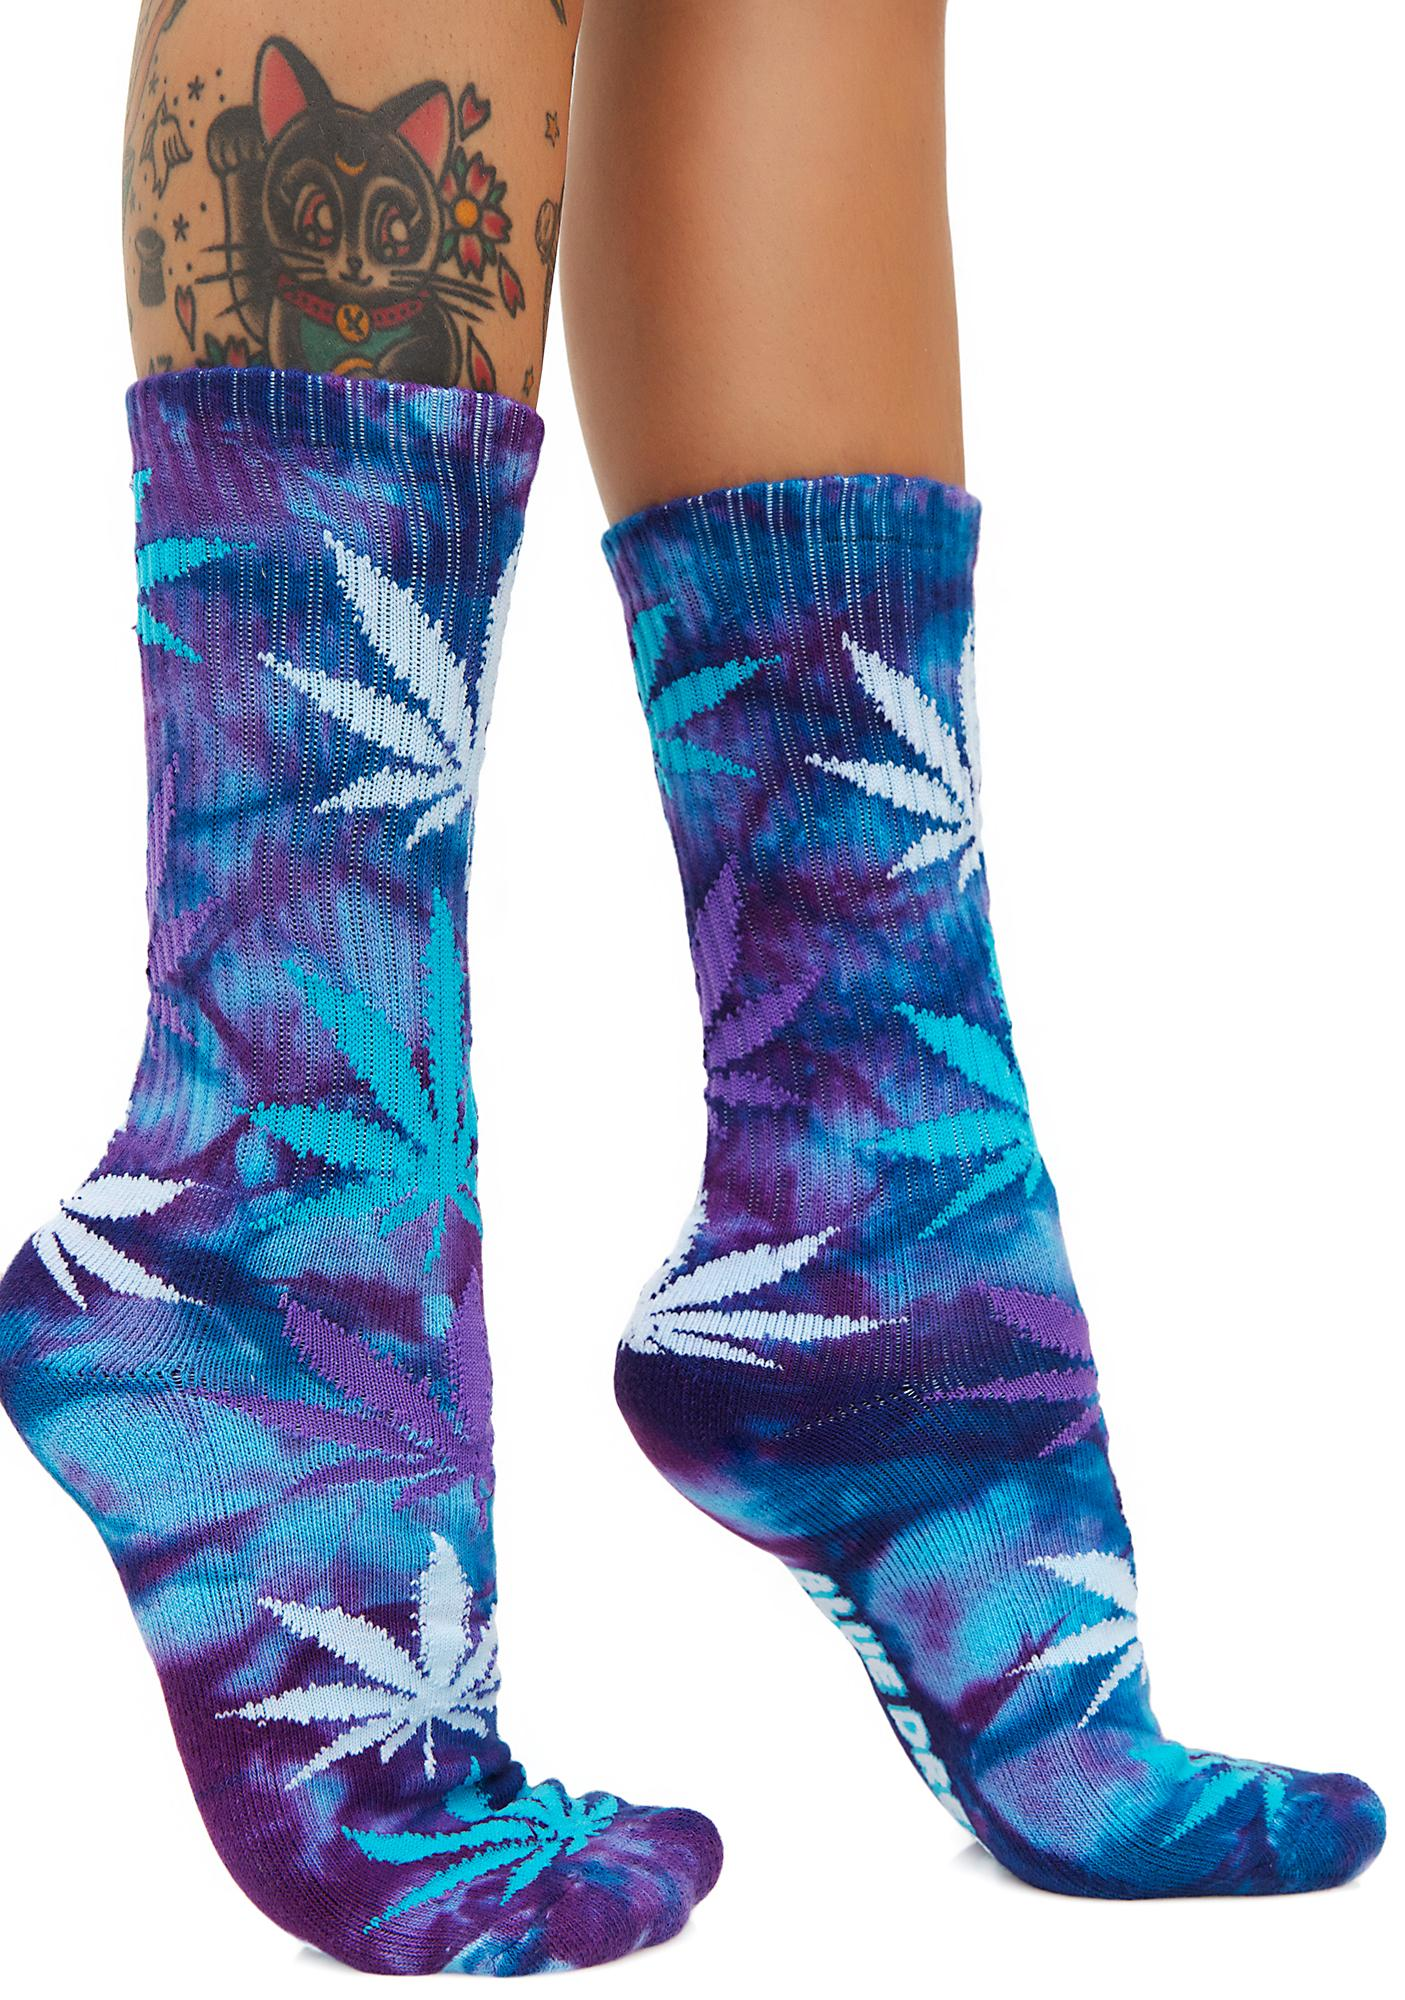 a description of the plant life beyond the weed socks Cannabis, also known as marijuana among other names, is a psychoactive drug from the cannabis plant intended for medical or recreational use the main psychoactive part of cannabis is tetrahydrocannabinol (thc) one of 483 known compounds in the plant, including at least 65 other cannabinoids.